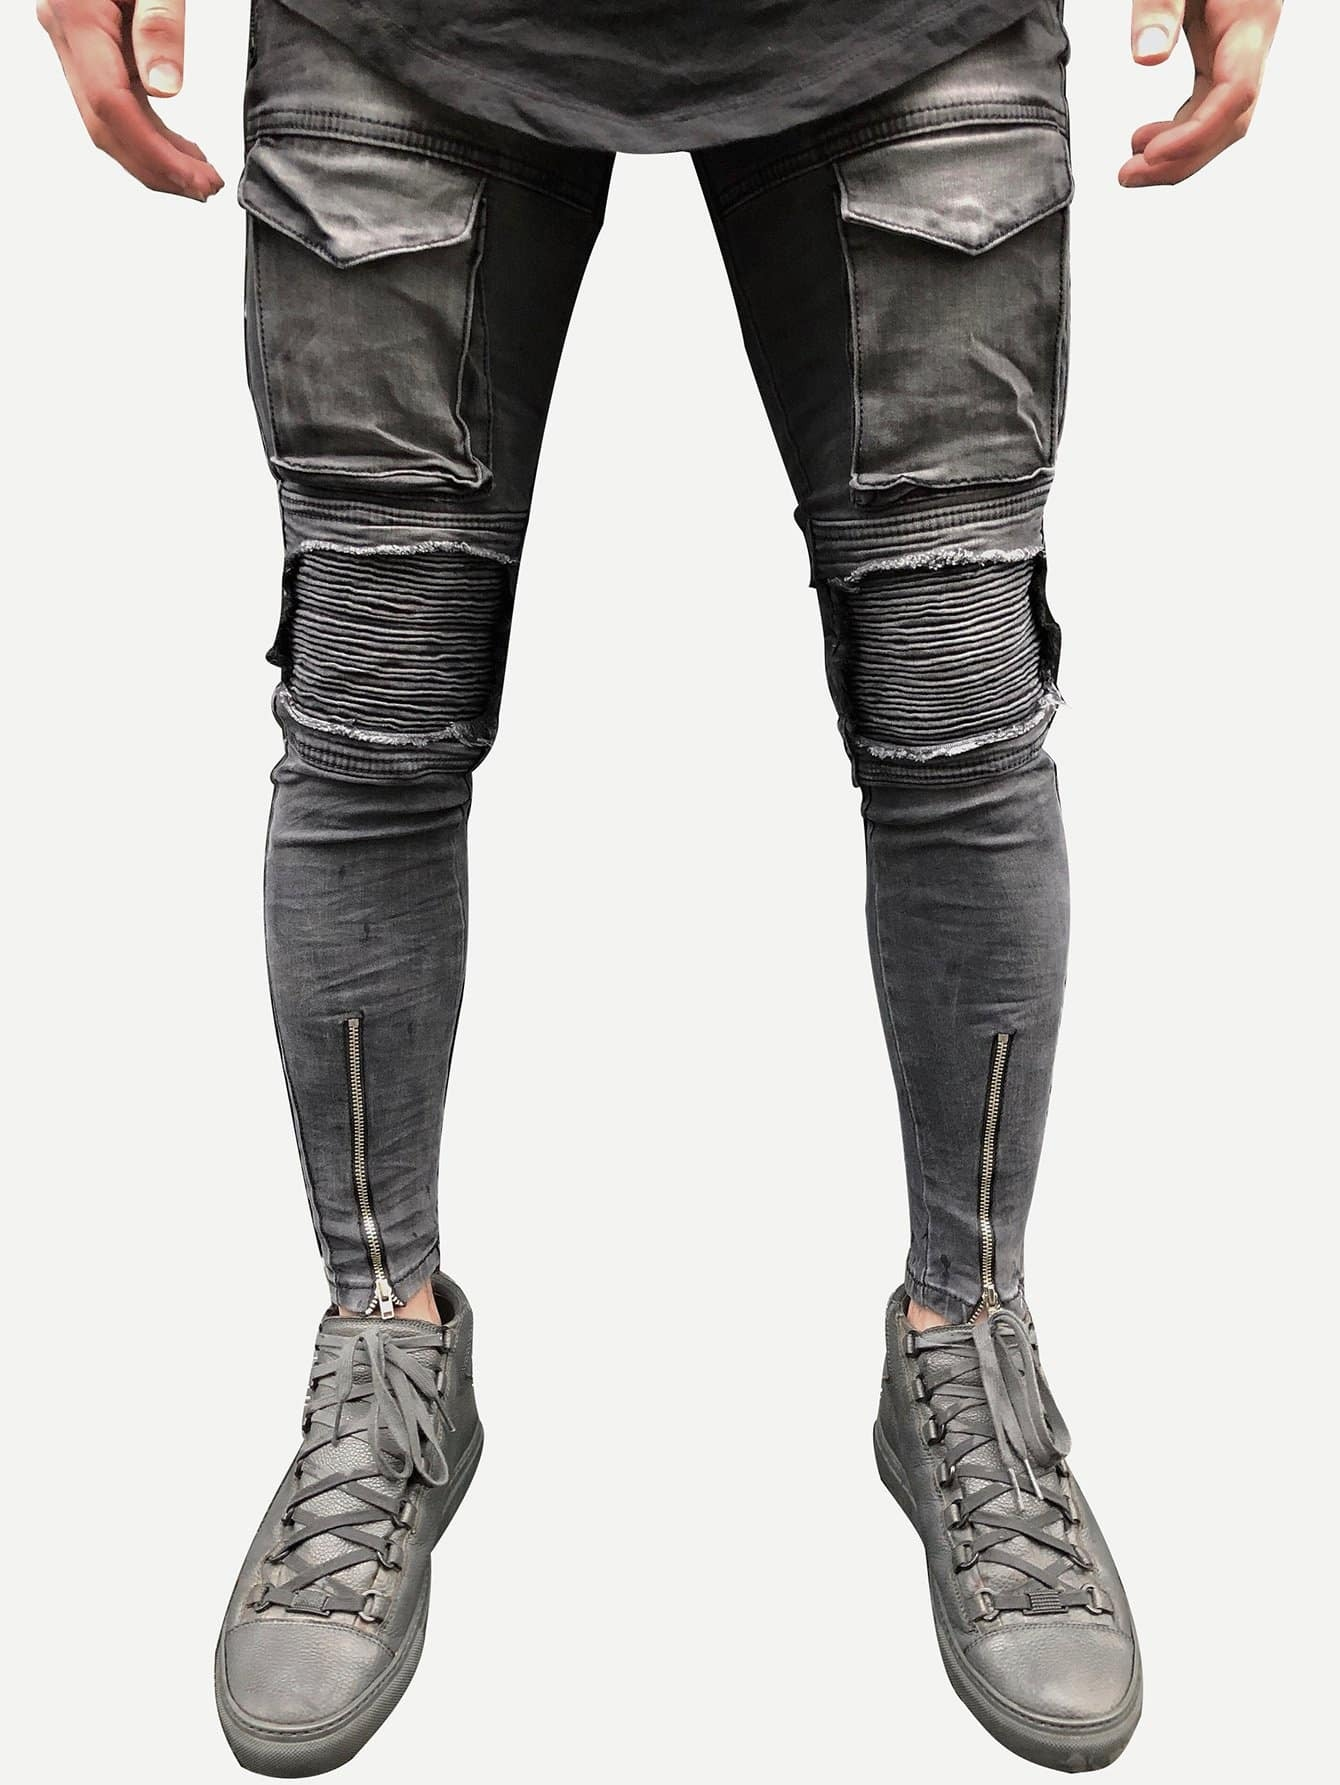 Men Zip And Pocket Decoration Destroyed Skinny Jeans nostalgia retro design fashion men jeans european stylish dimensional knee frayed hole destroyed ripped jeans men biker jeans